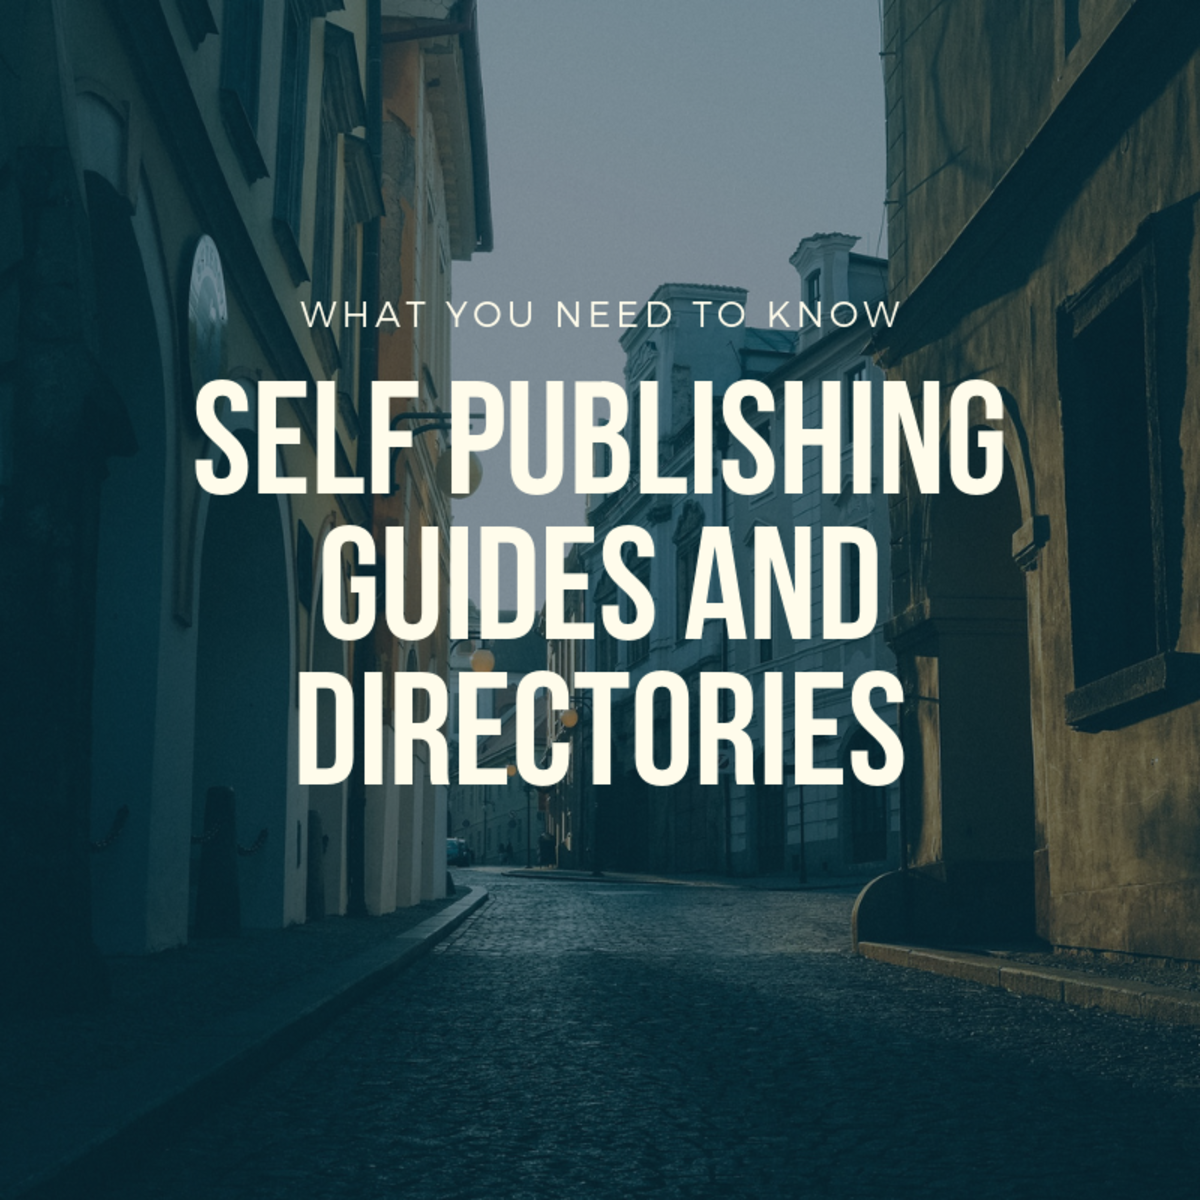 self-publishing-guides-and-directories-what-you-need-to-know